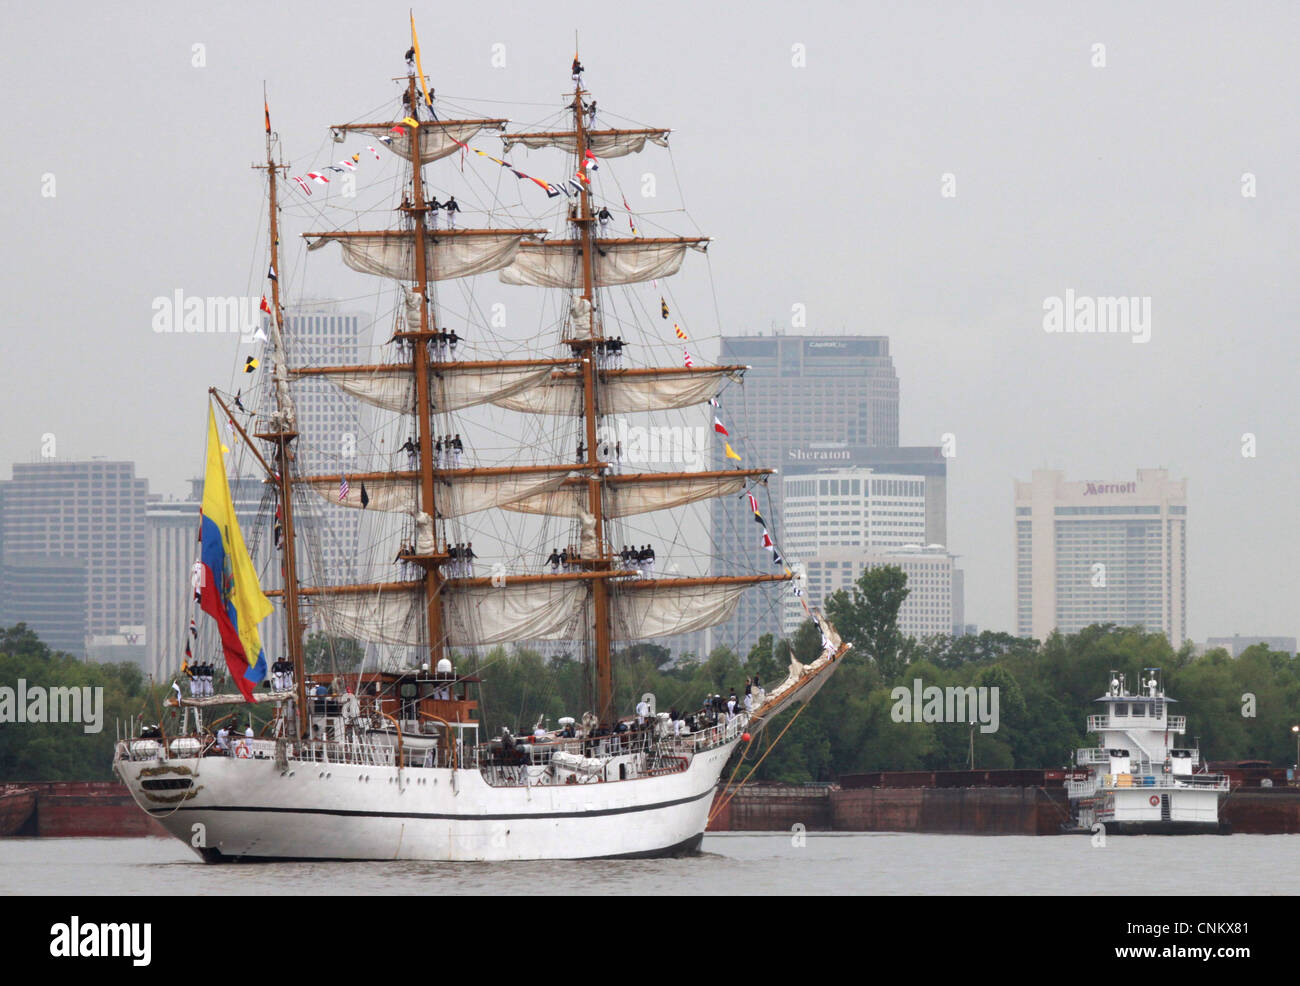 The Ecuadorian tall ship BAE Guayas arrives in New Orleans in conjunction with The War of 1812 Bicentennial Commemoration. - Stock Image